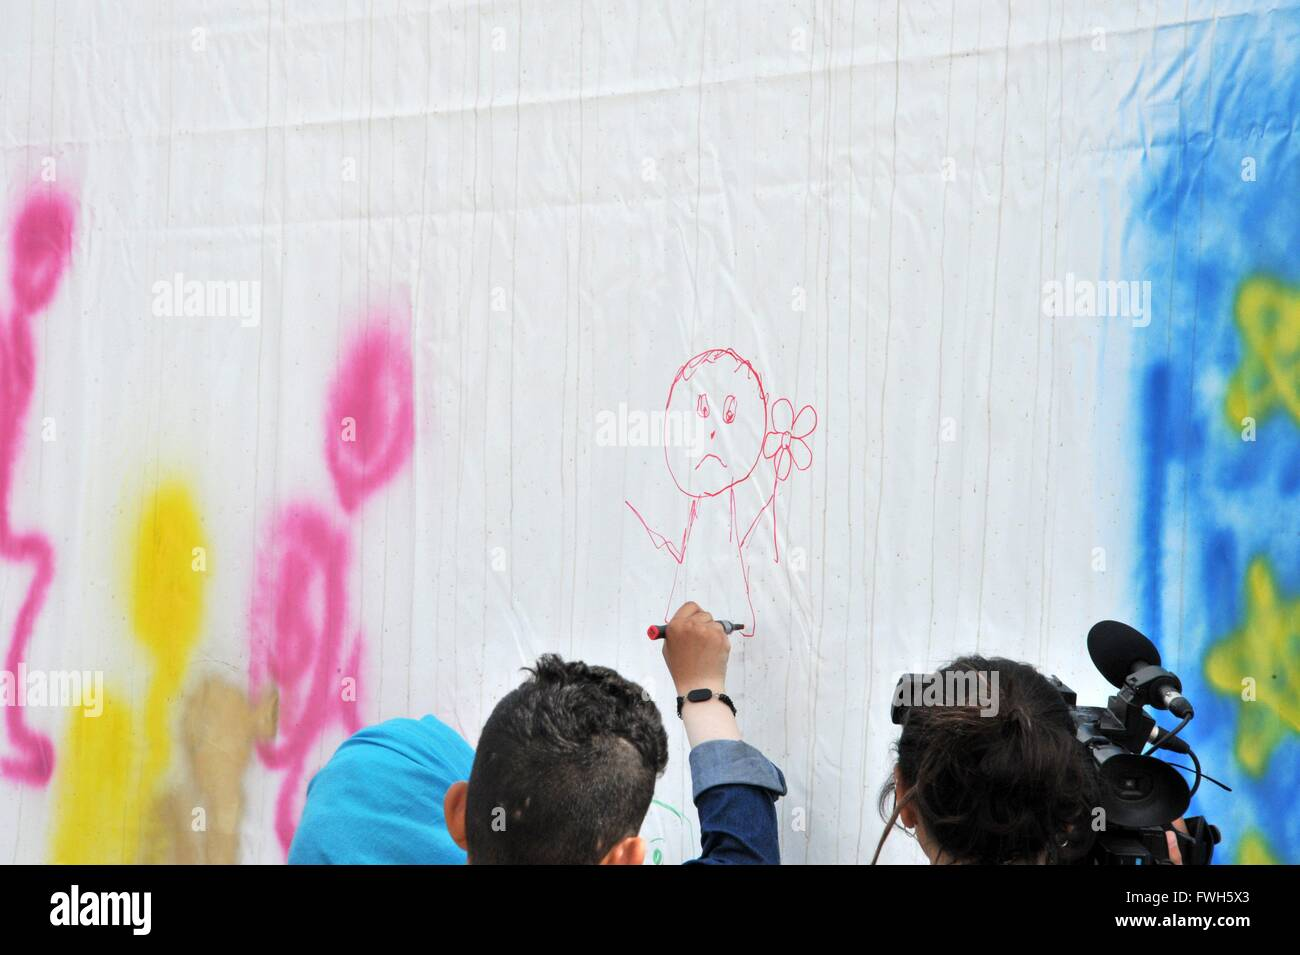 Refugees spraying graffiti on a wall tent. Homeless, showing their way being sad - 1 April 2016 - Stock Image